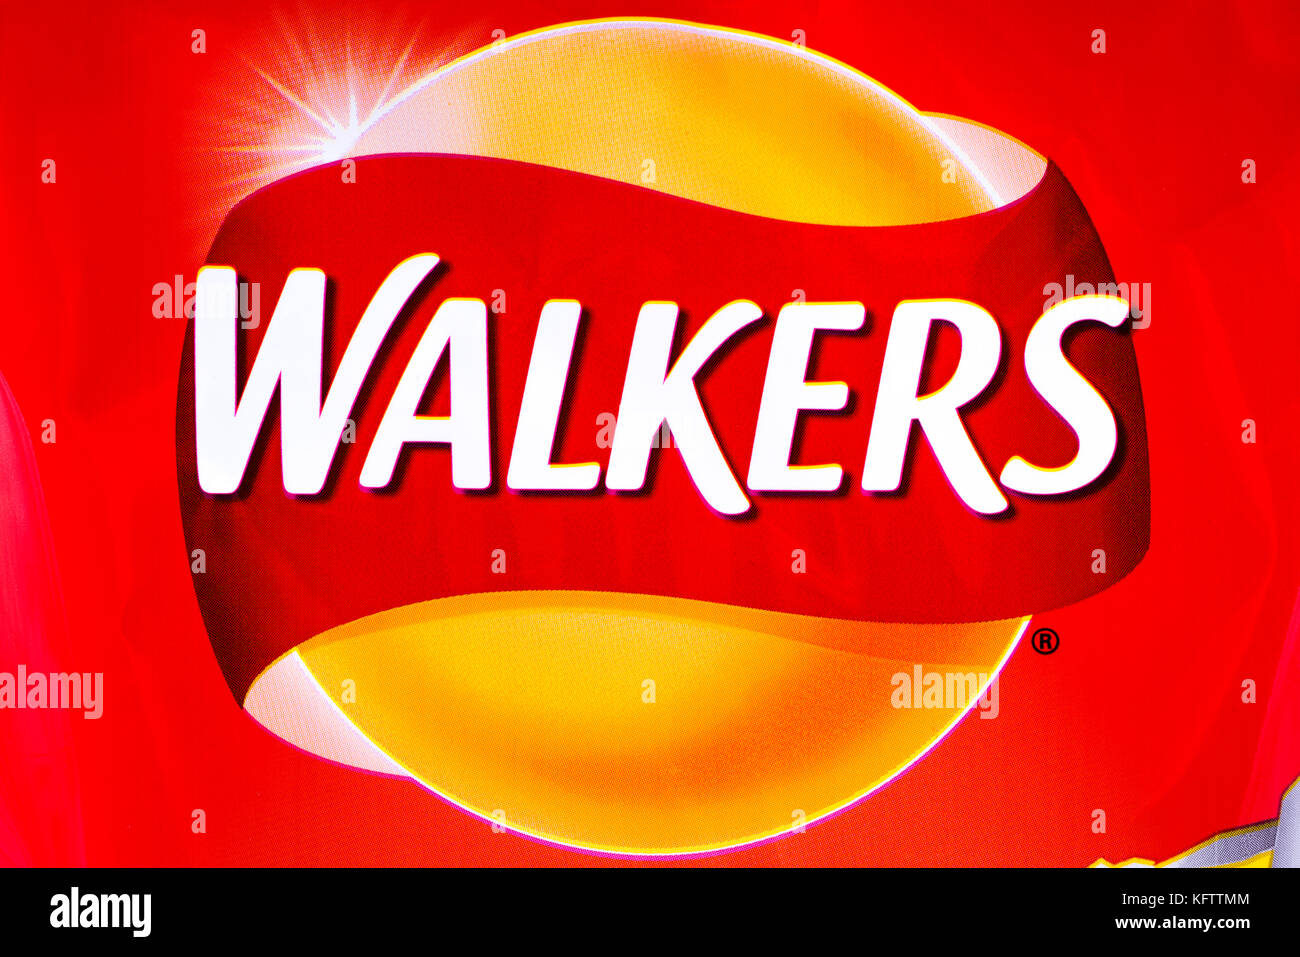 LONDON, UK - OCTOBER 10TH 2017: A close-up of the Walkers logo on a pack of Ready Salted crisps, on 10th October - Stock Image